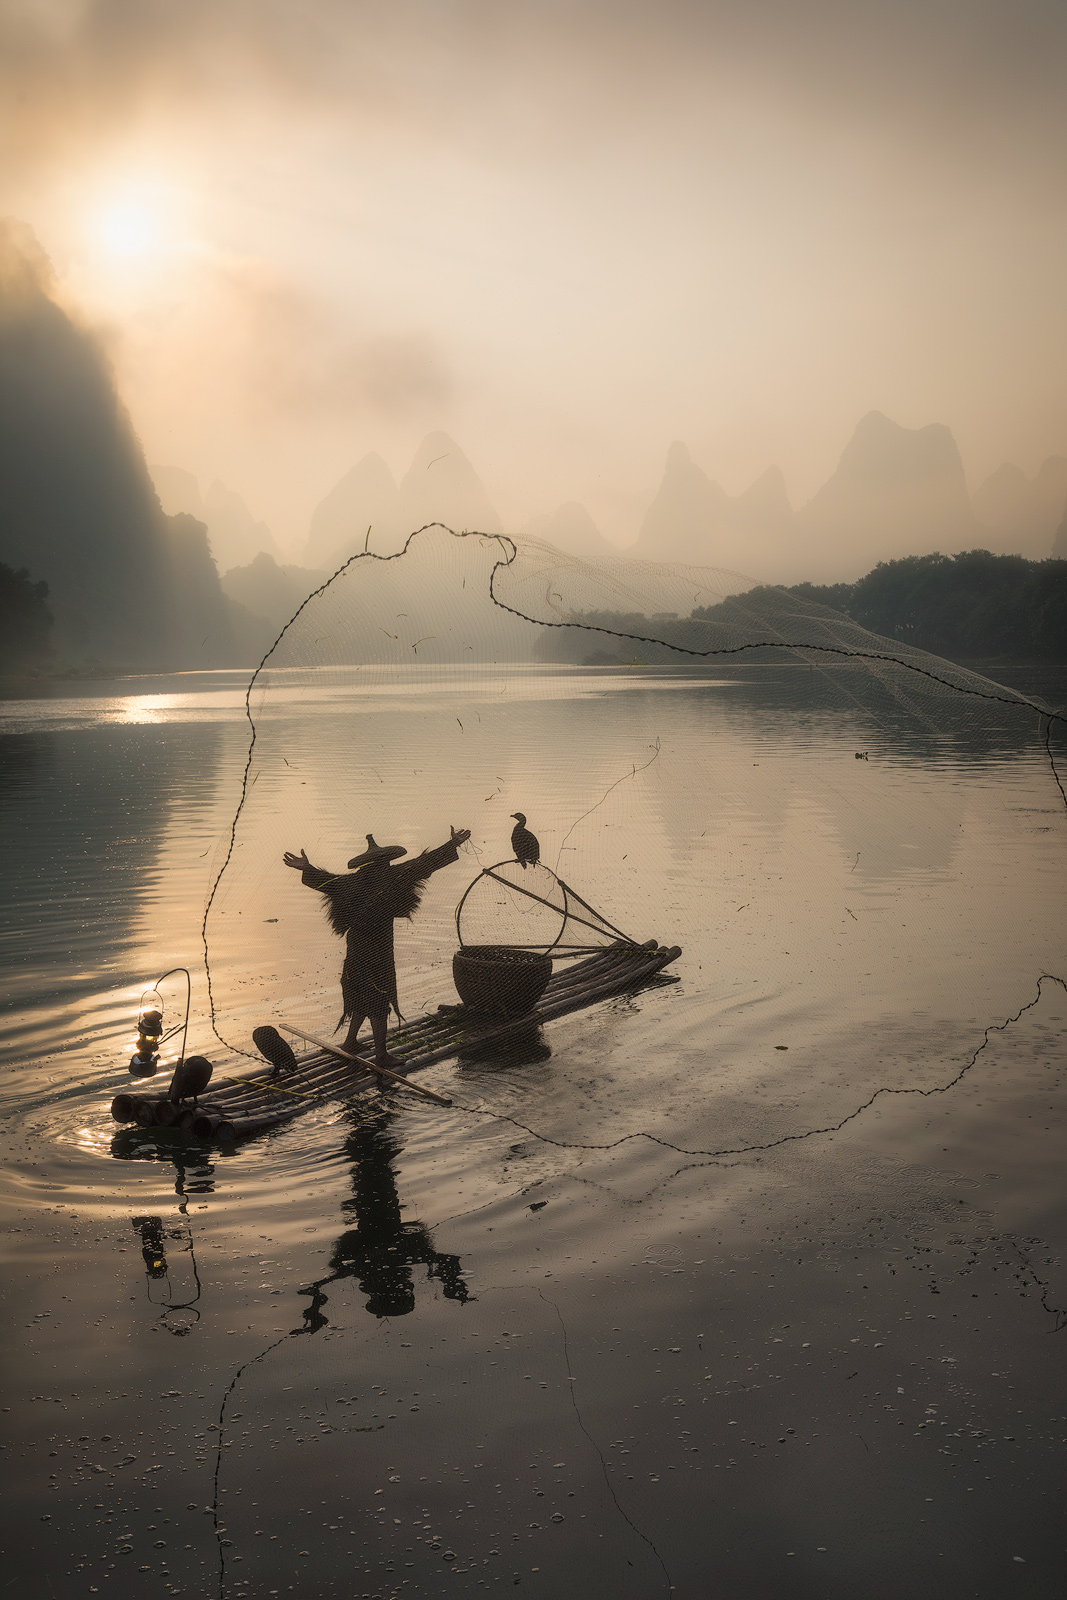 2017, asia, asian, china, chinese, cormorant, environmental portait, fisherman, guilin, karst mountains, landscape, li river, male, man, morning, mountain, portrait, river, sunrise, water body, yangsh, photo